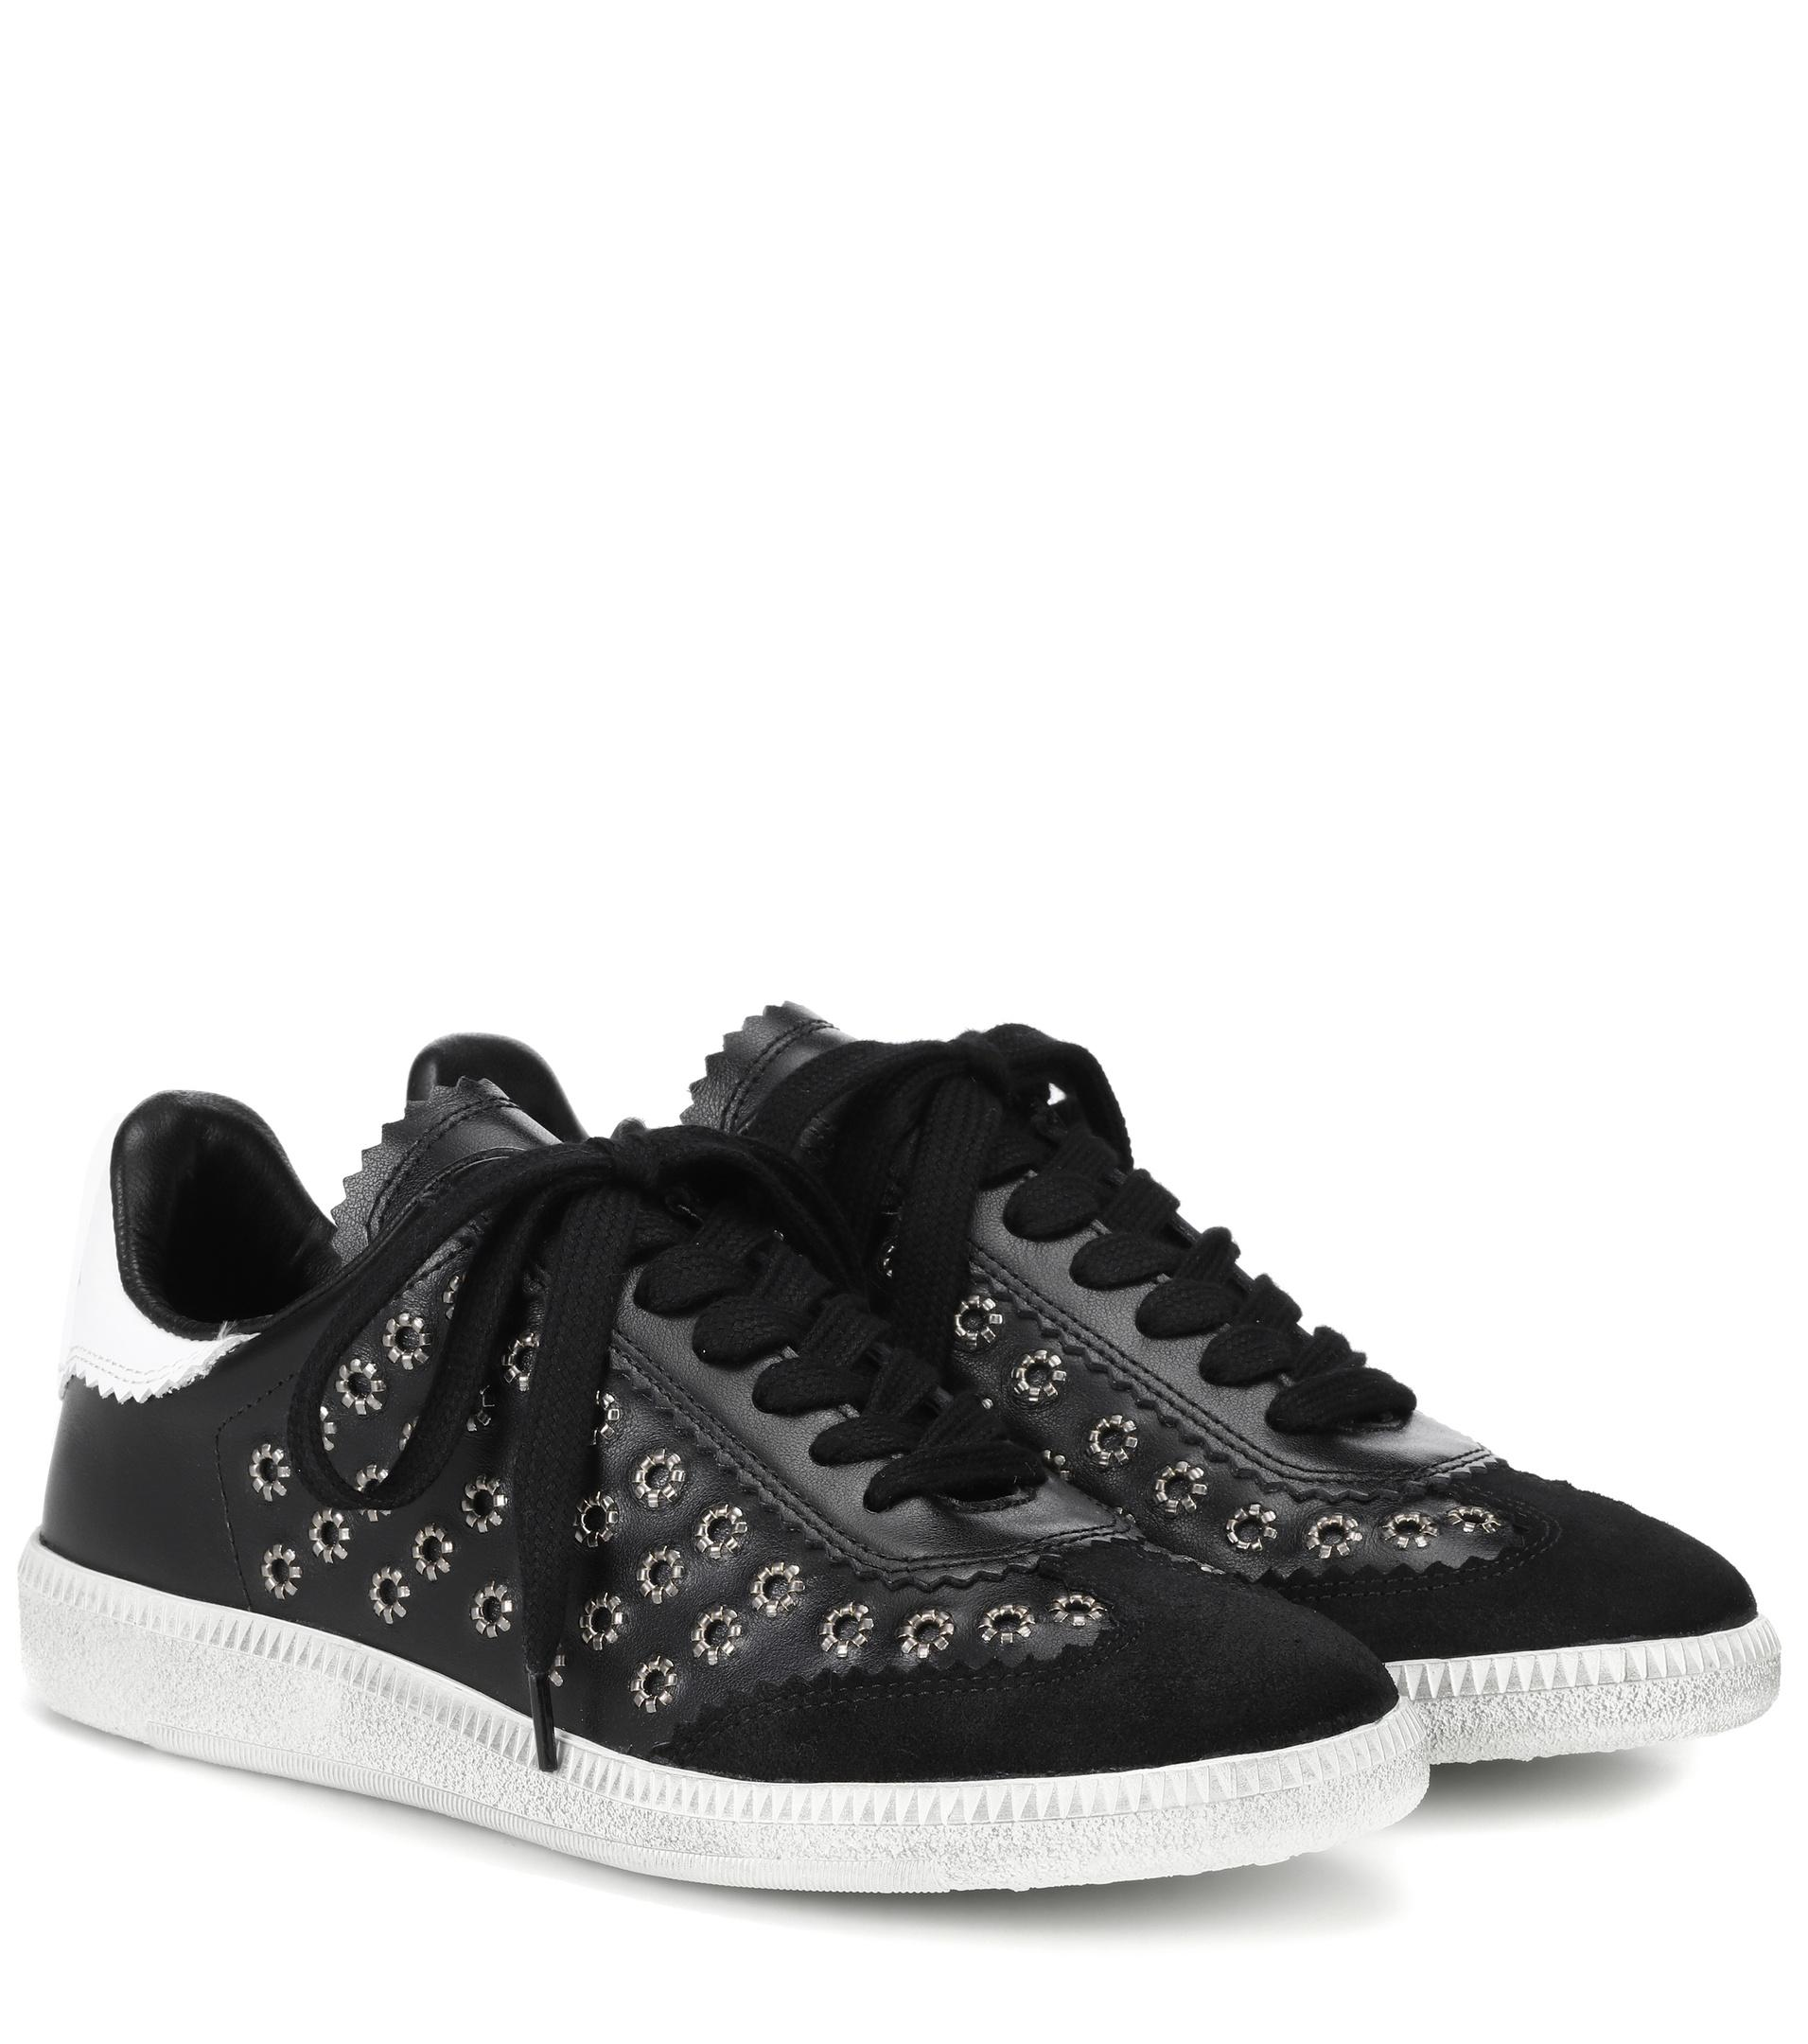 Sale Top Quality Isabel Marant Bryce Embellished Leather and Suede Sneakers Shop For Online g5QQFsEVx